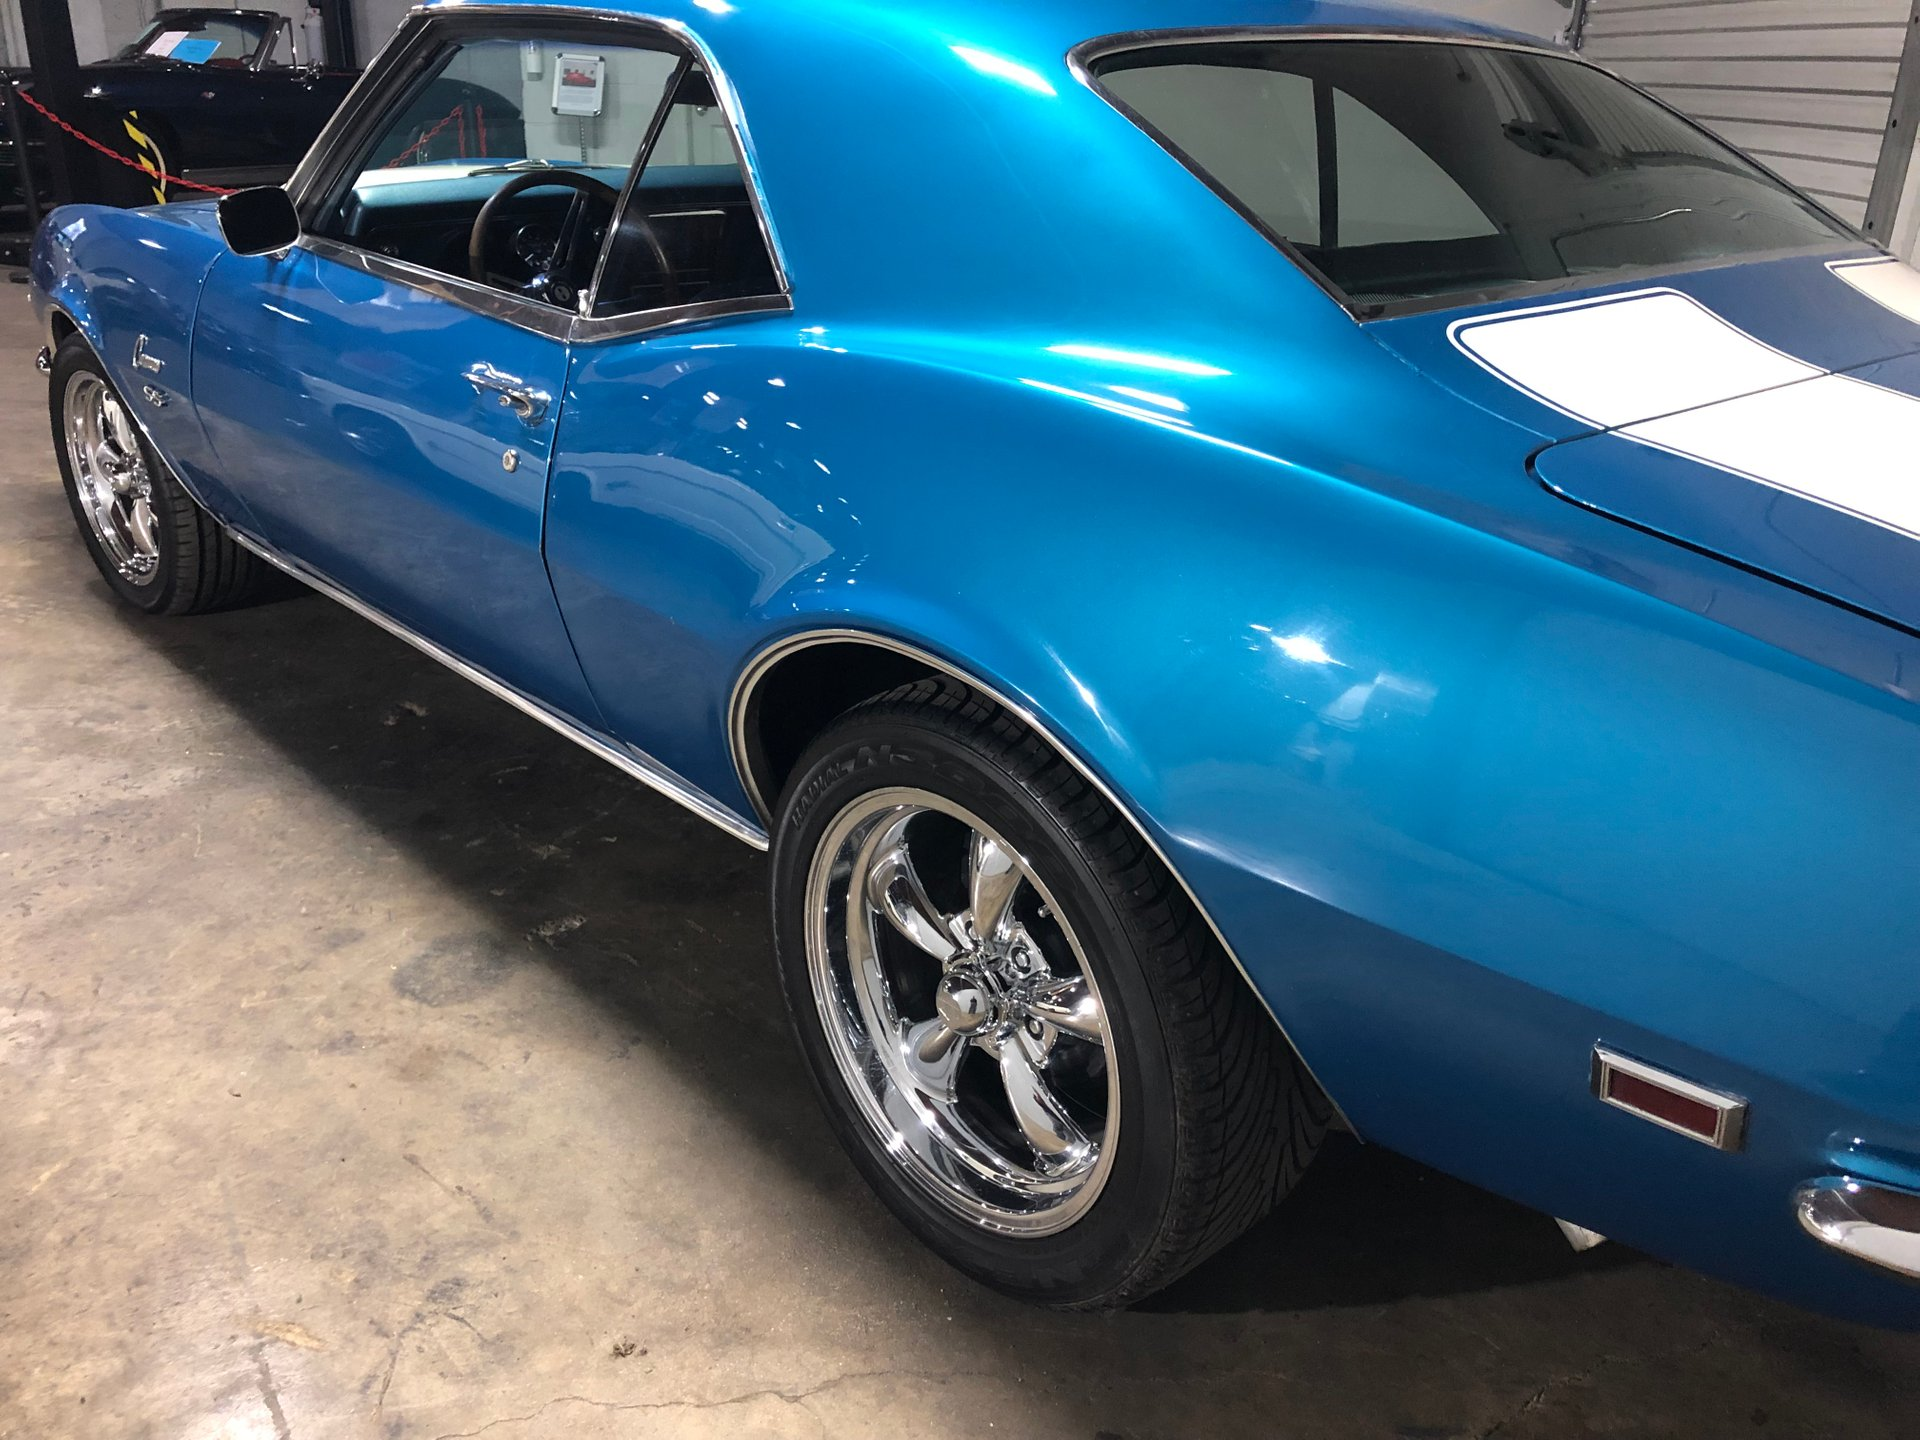 1968 Chevrolet Camaro Savannah Classic Cars Blue